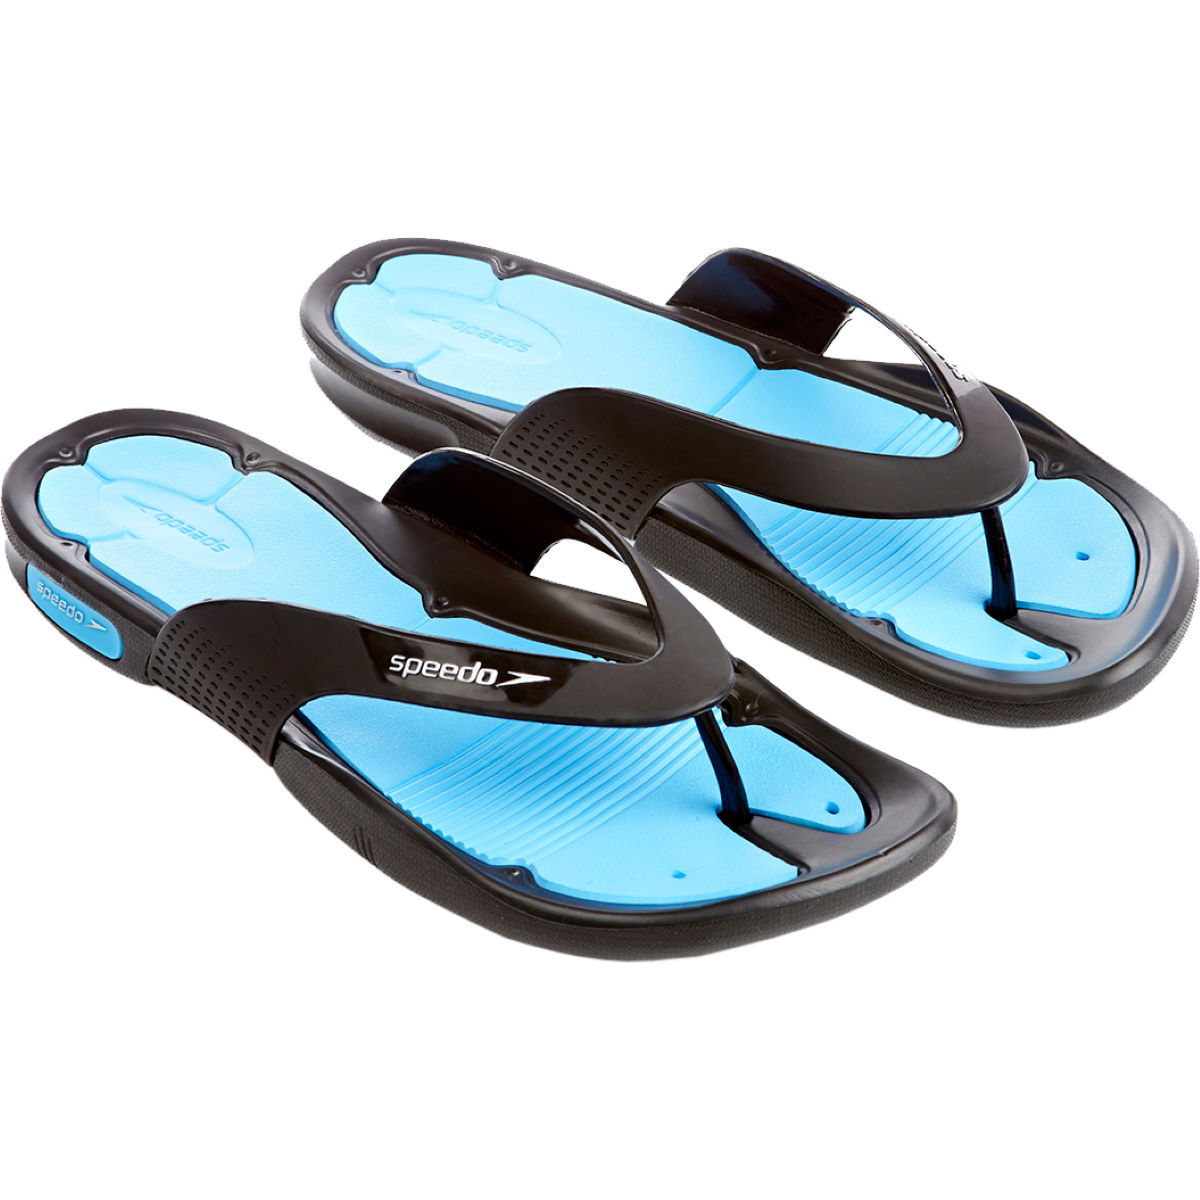 Speedo Pool Surfer Thong Flip-flops